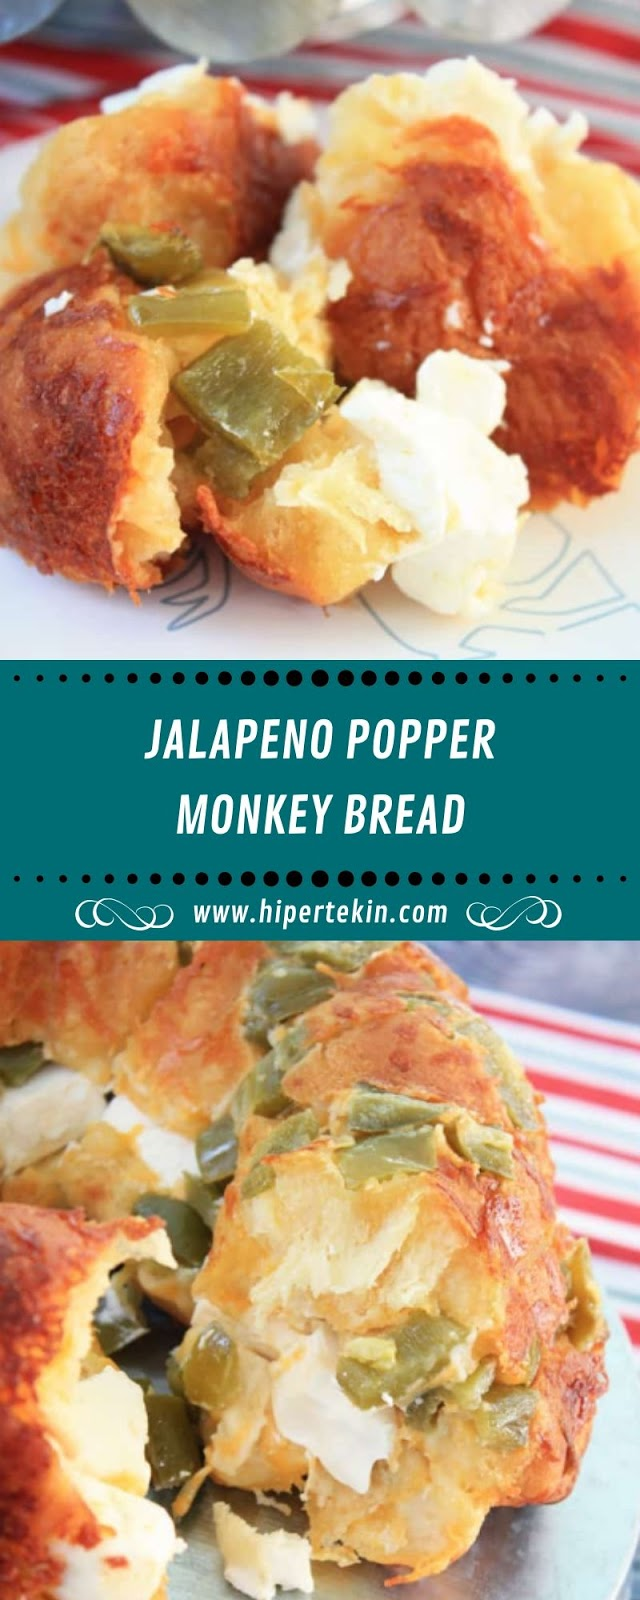 JALAPENO POPPER MONKEY BREAD